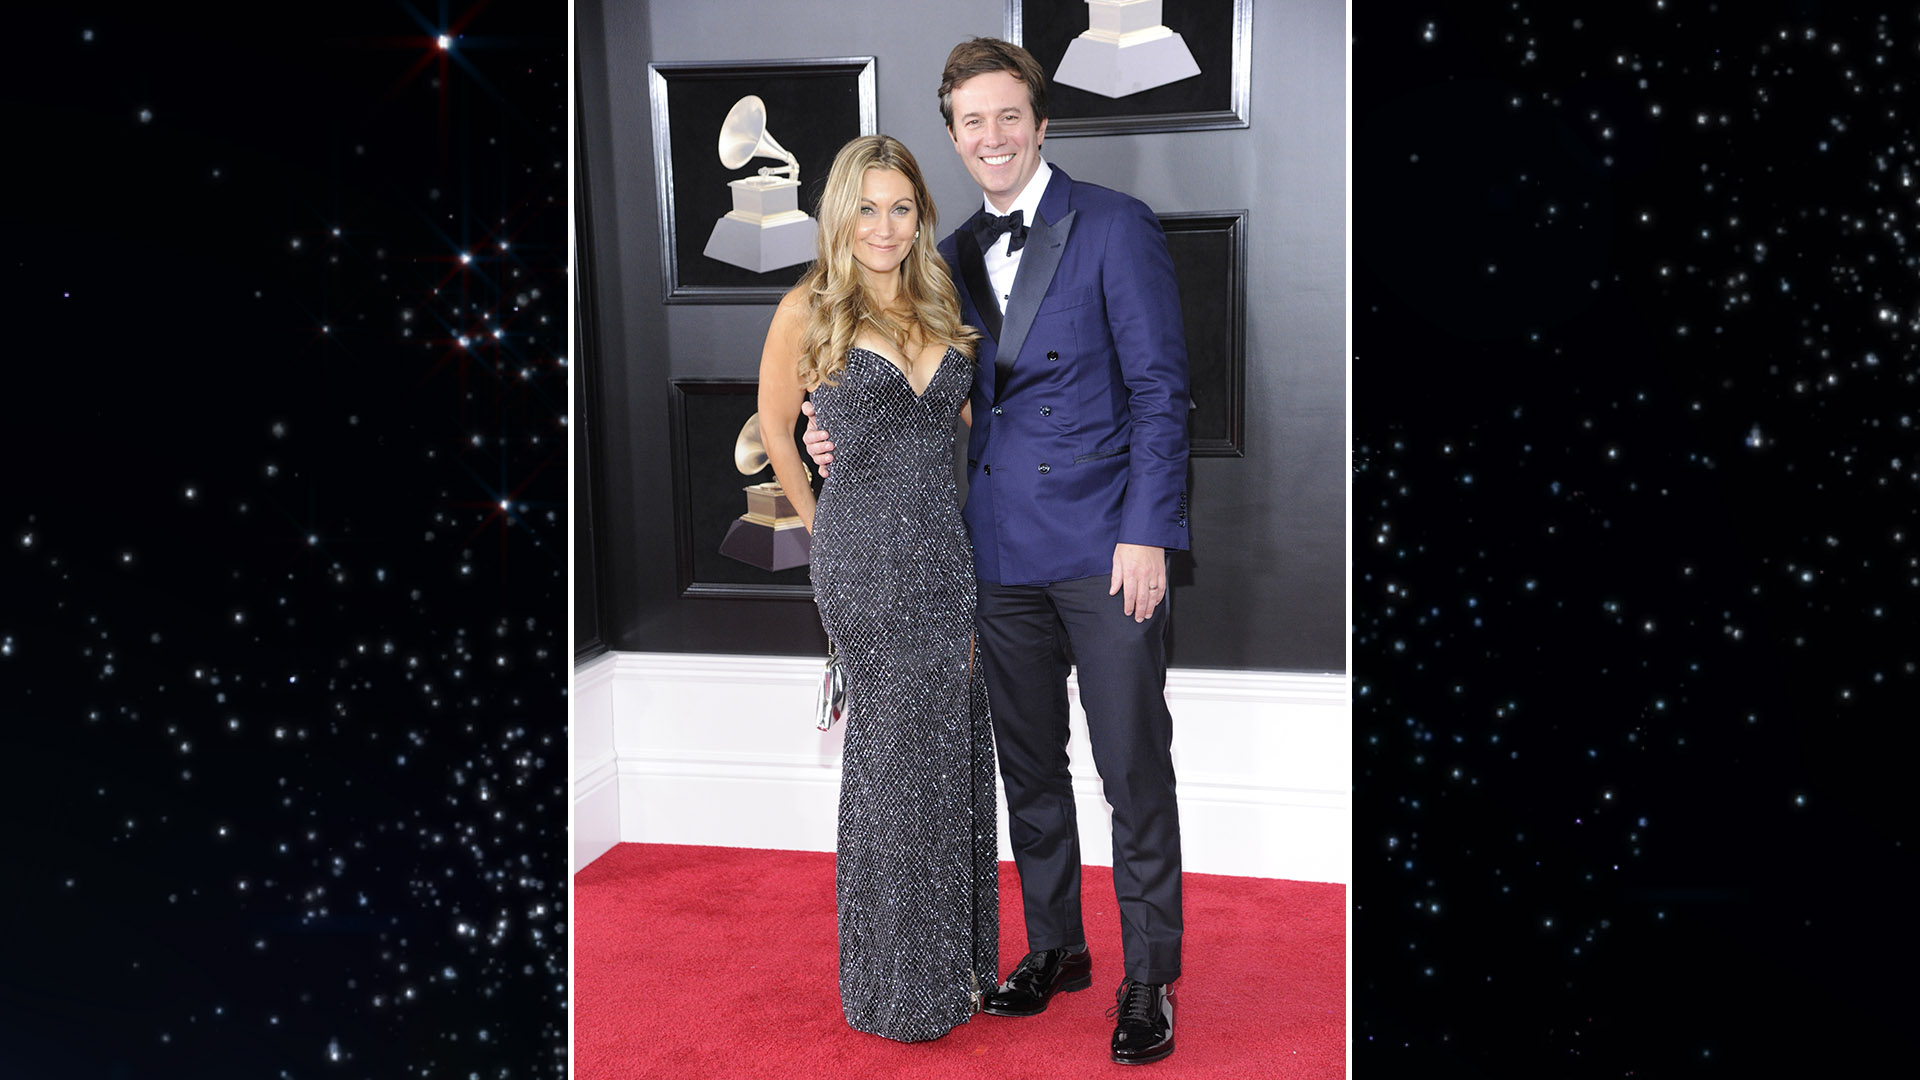 CBS Evening News anchor Jeff Glor and his wife, Nicole, make fashion headlines on the GRAMMY red carpet.